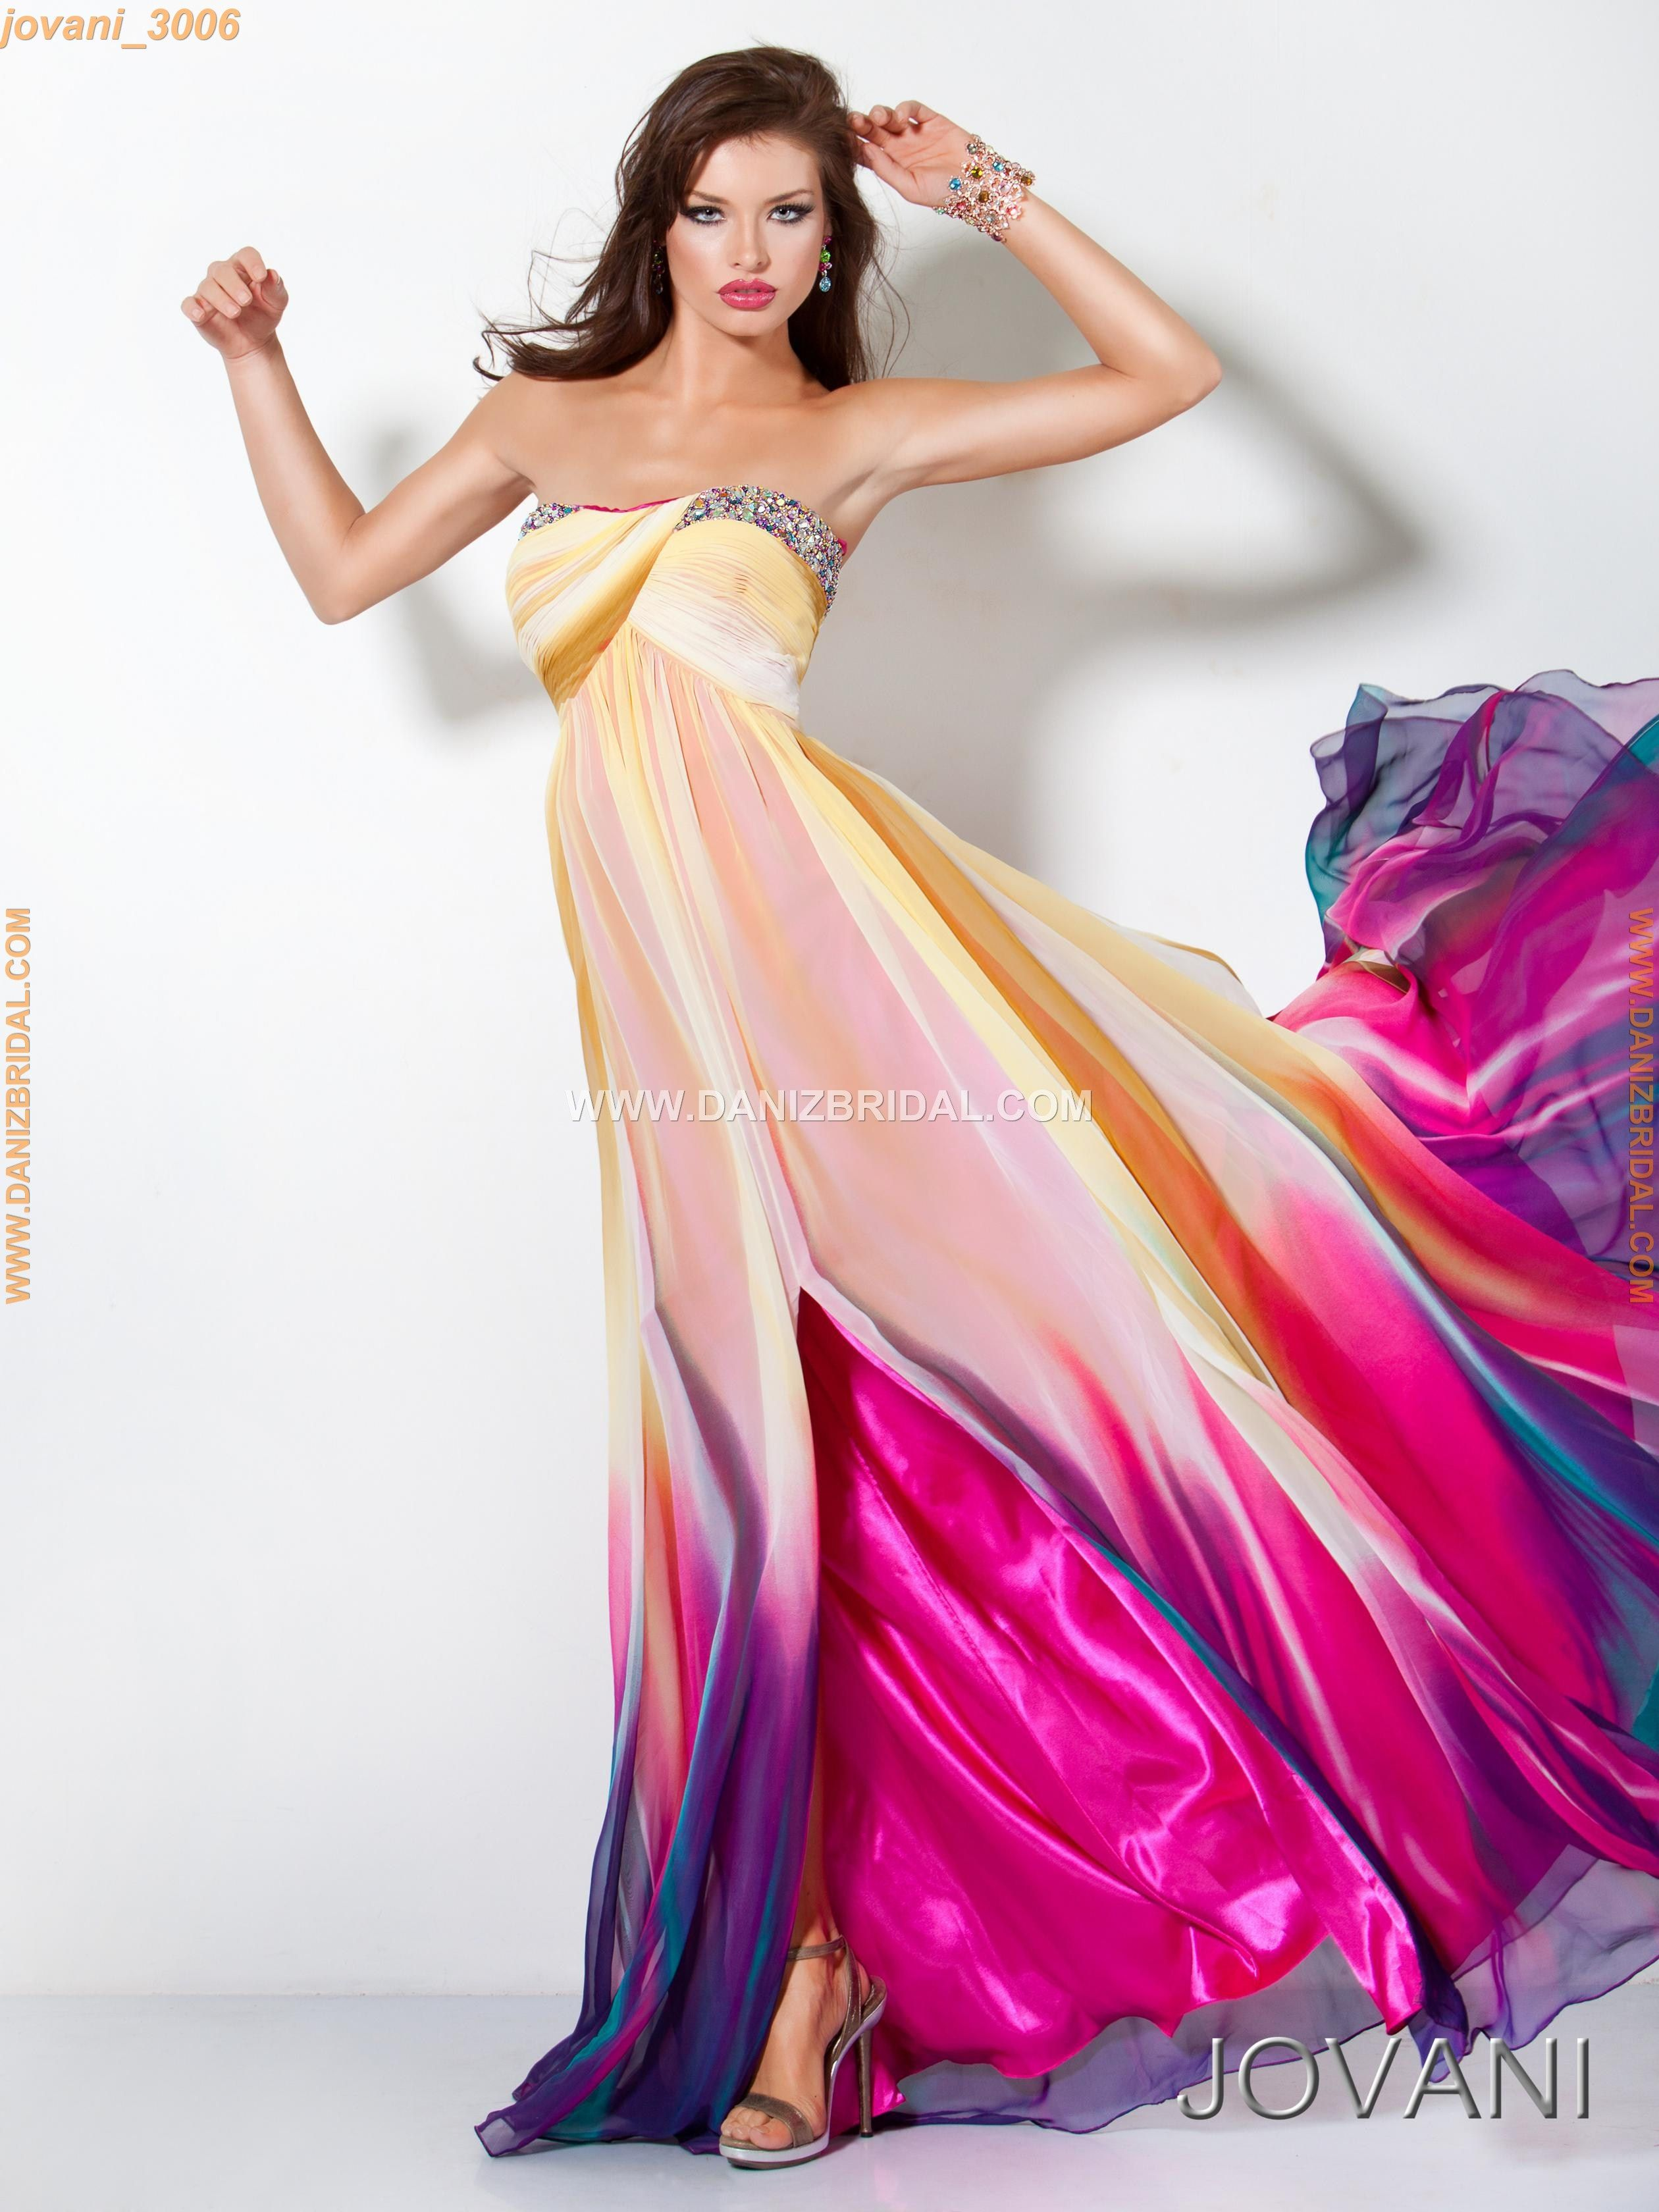 Jovani 3006 $500 wish I had some place to wear this... | Fashion ...